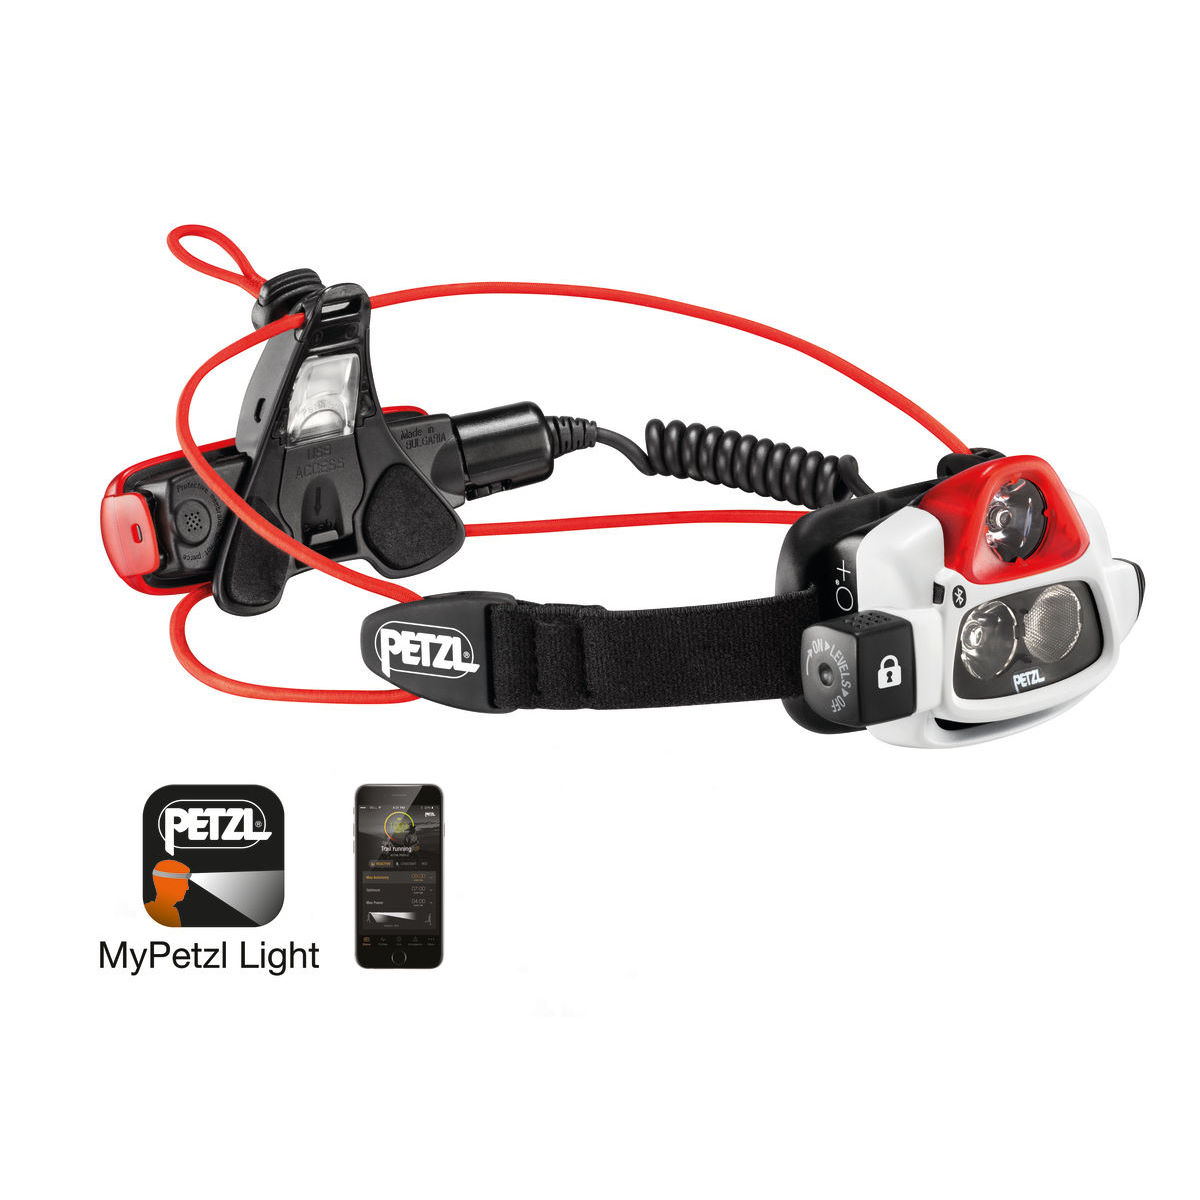 Lampe frontale Petzl Nao+ Smart Bluetooth - Noir/Rouge